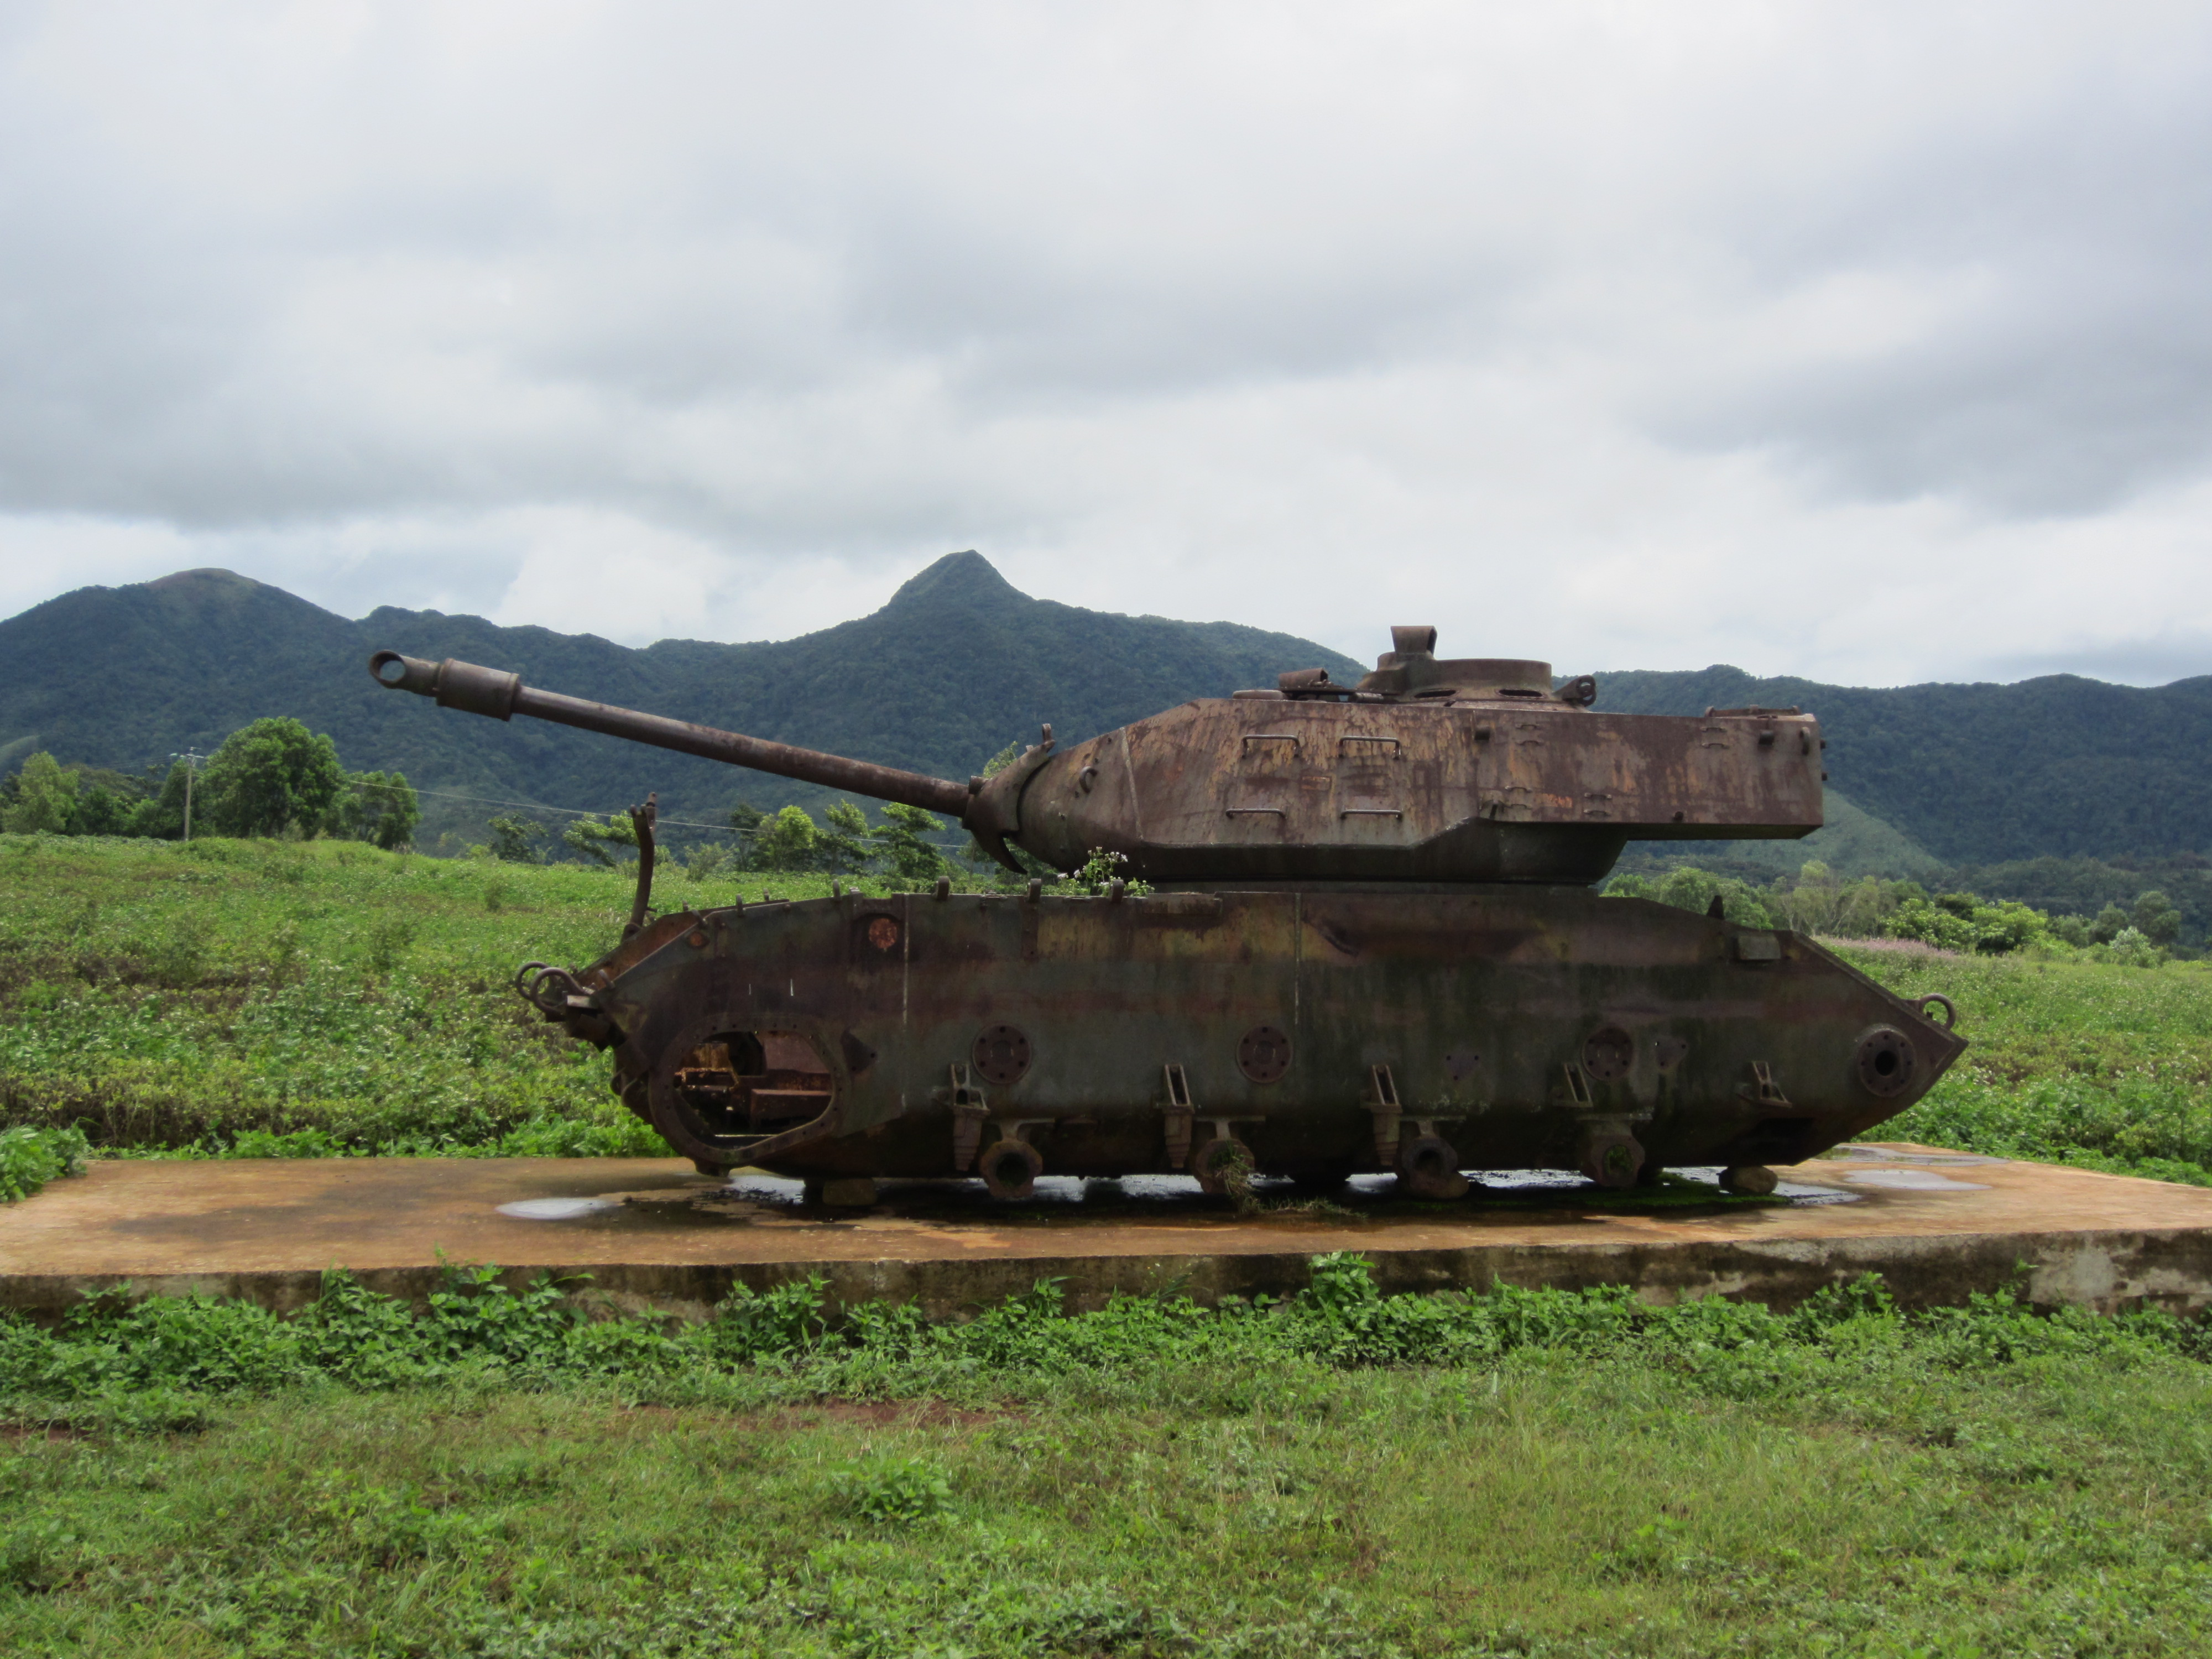 khe sahn Preliminaries edit the camp edit the village of khe sanh was the seat of government of huong hoa district, an area of bru montagnard villages and coffee plantations, situated about seven miles from the laotian frontier on route 9, the northernmost transverse road in south vietnam.